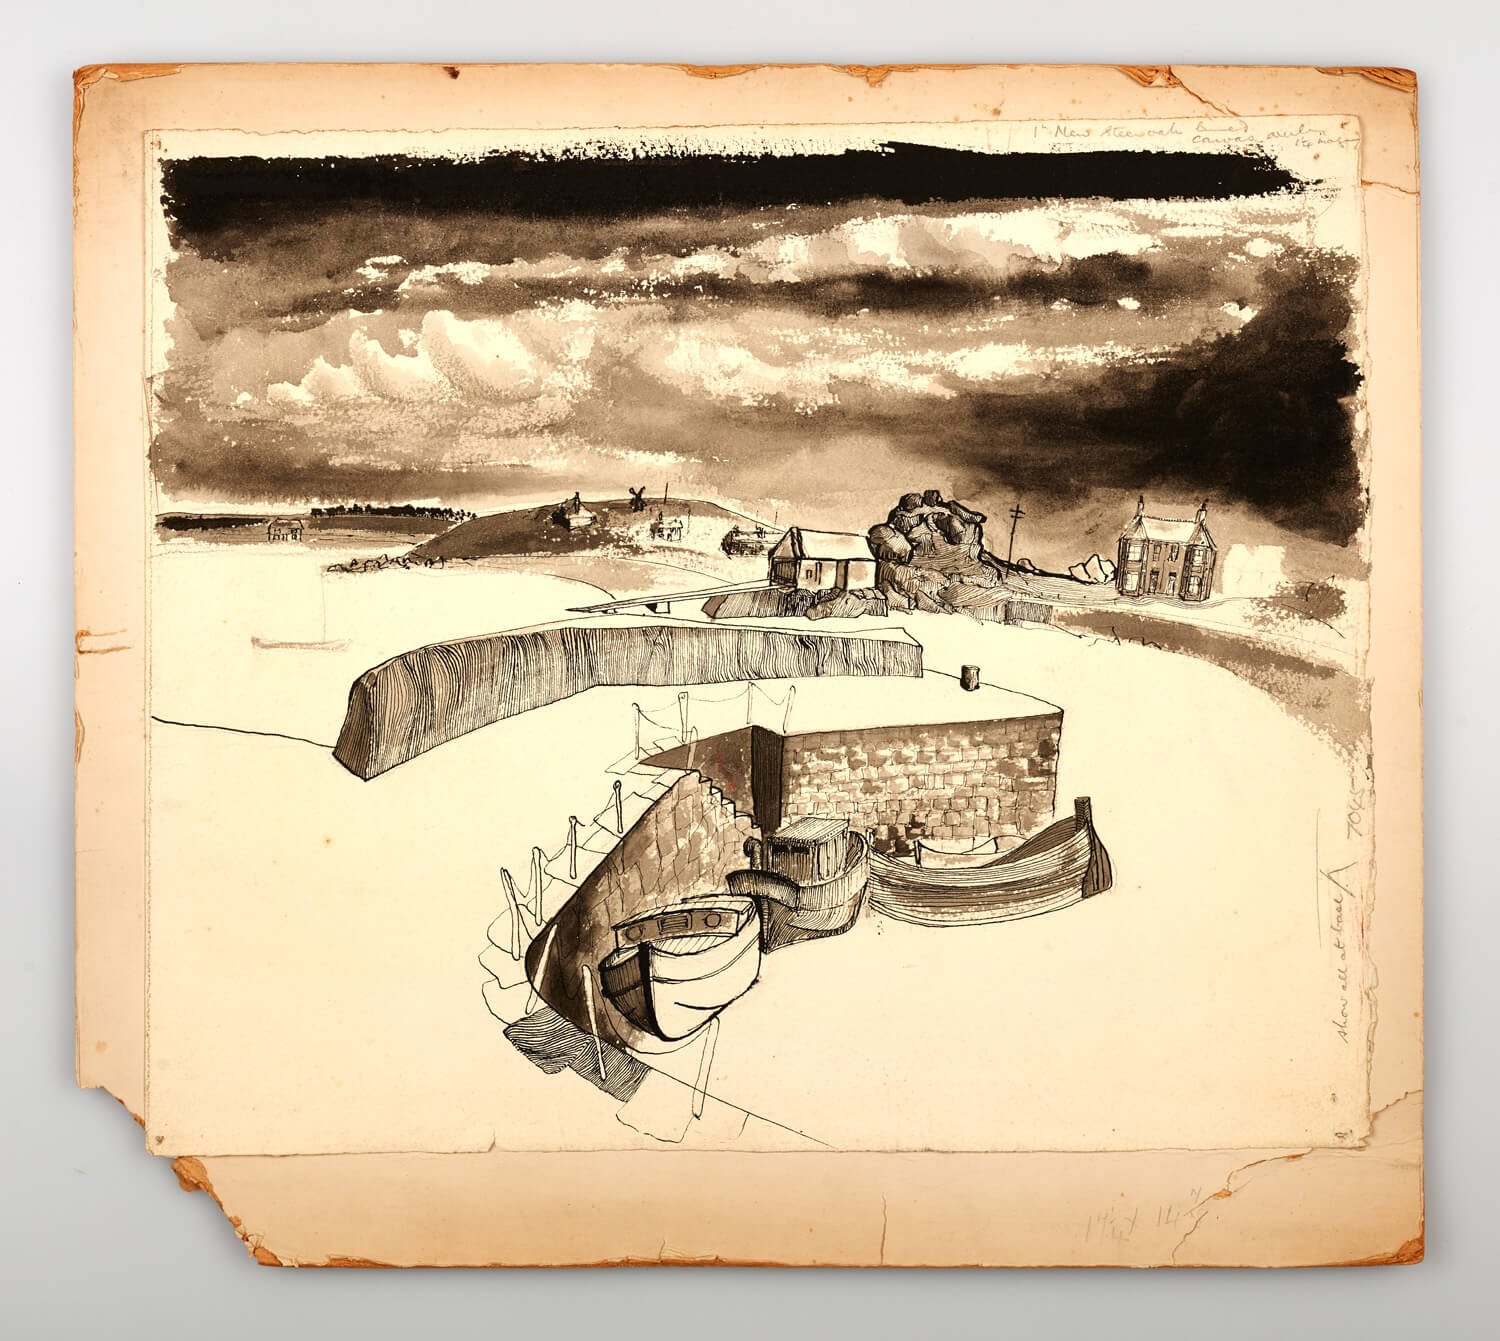 JB261 - Cornish Harbour - 1946 - 39 x 47 cm - Pen and ink and wash